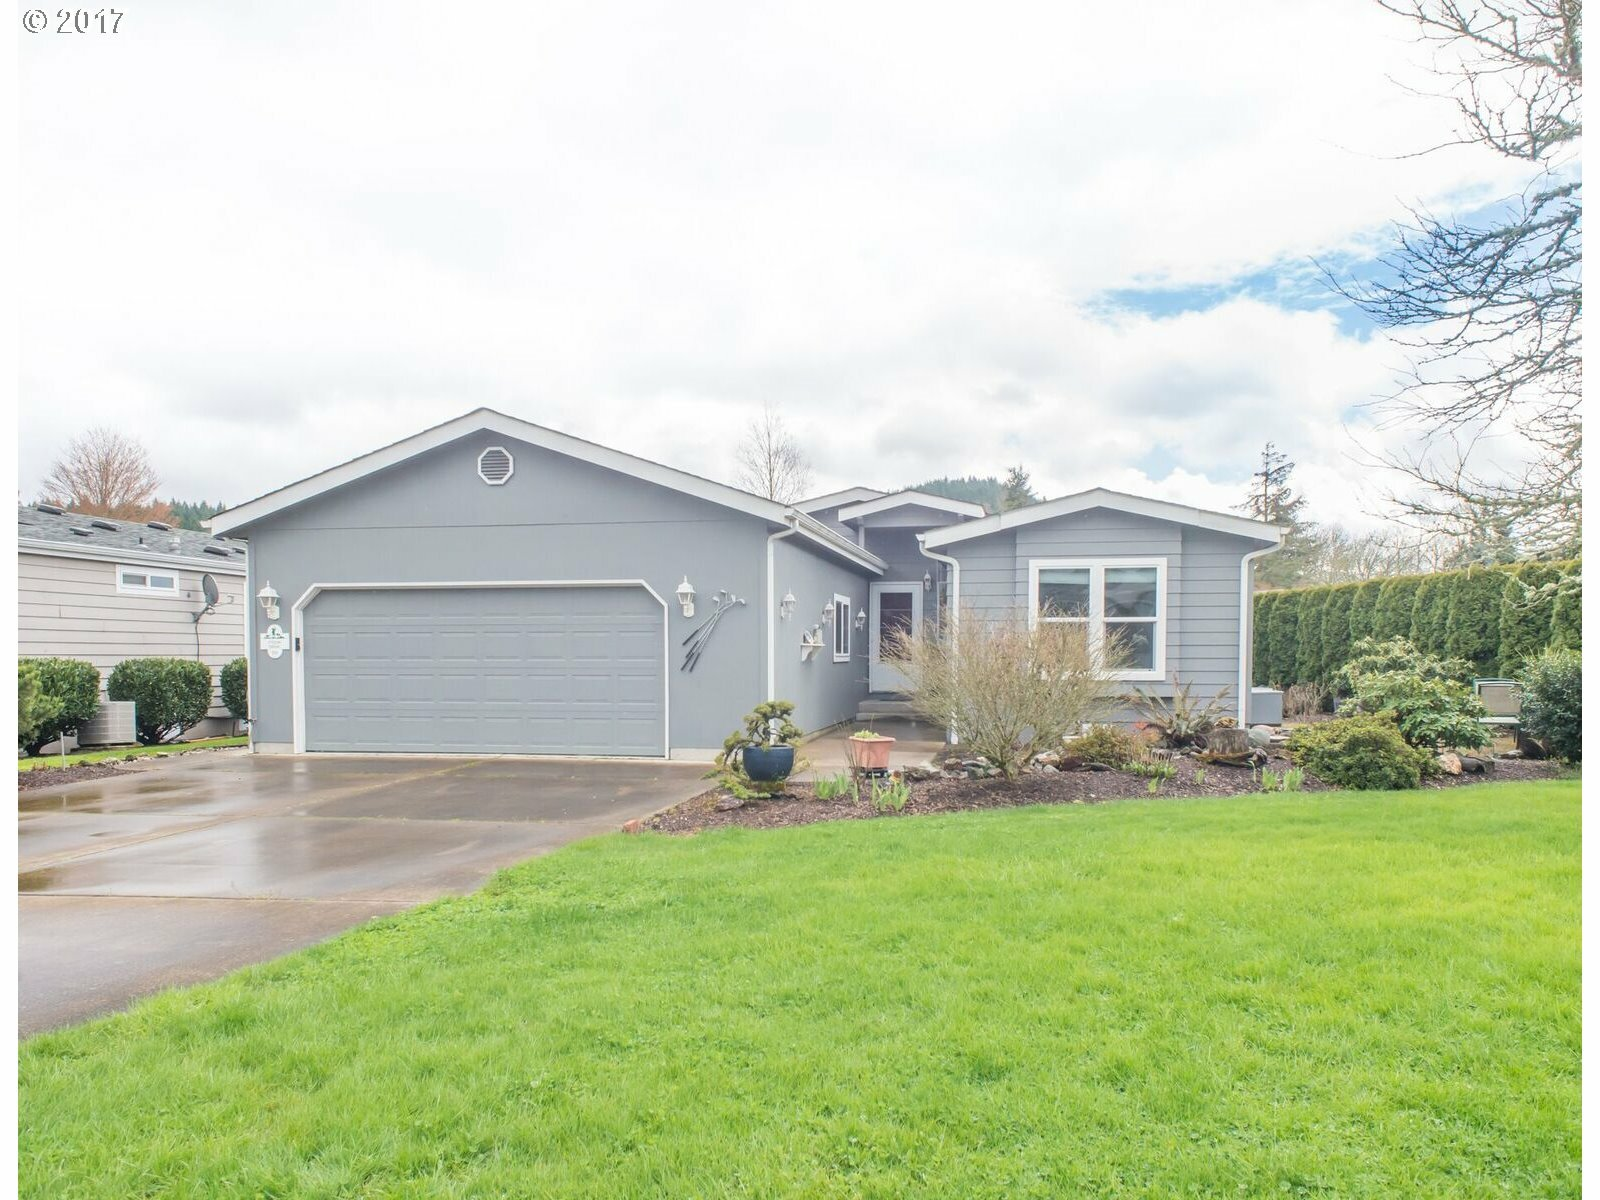 125 Tyson Dr, Cottage Grove, OR - USA (photo 1)